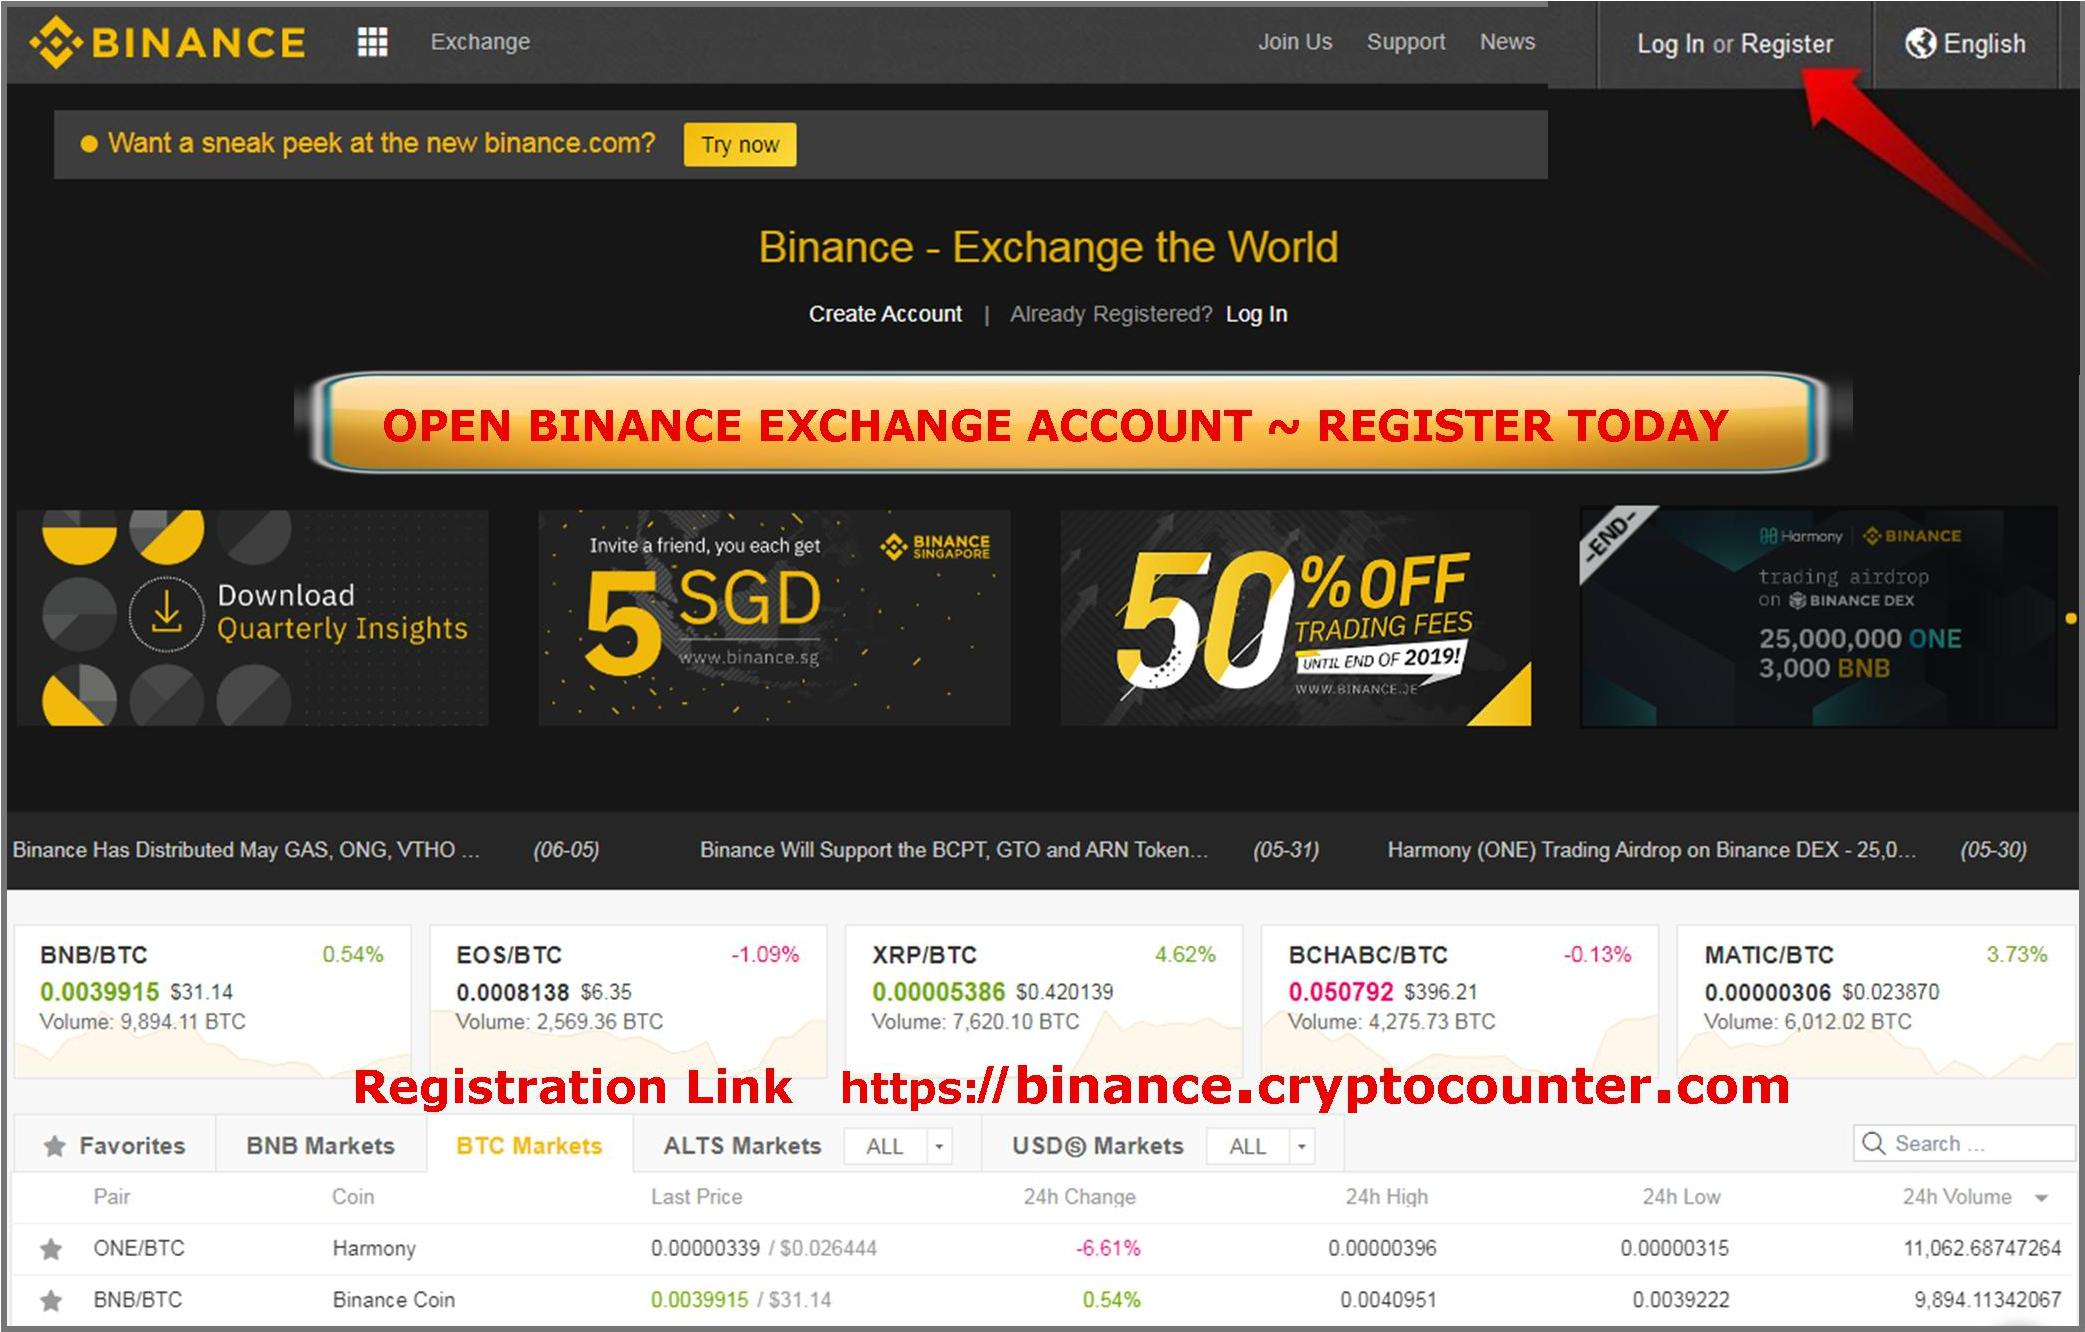 The Binance Exchange and trading platform